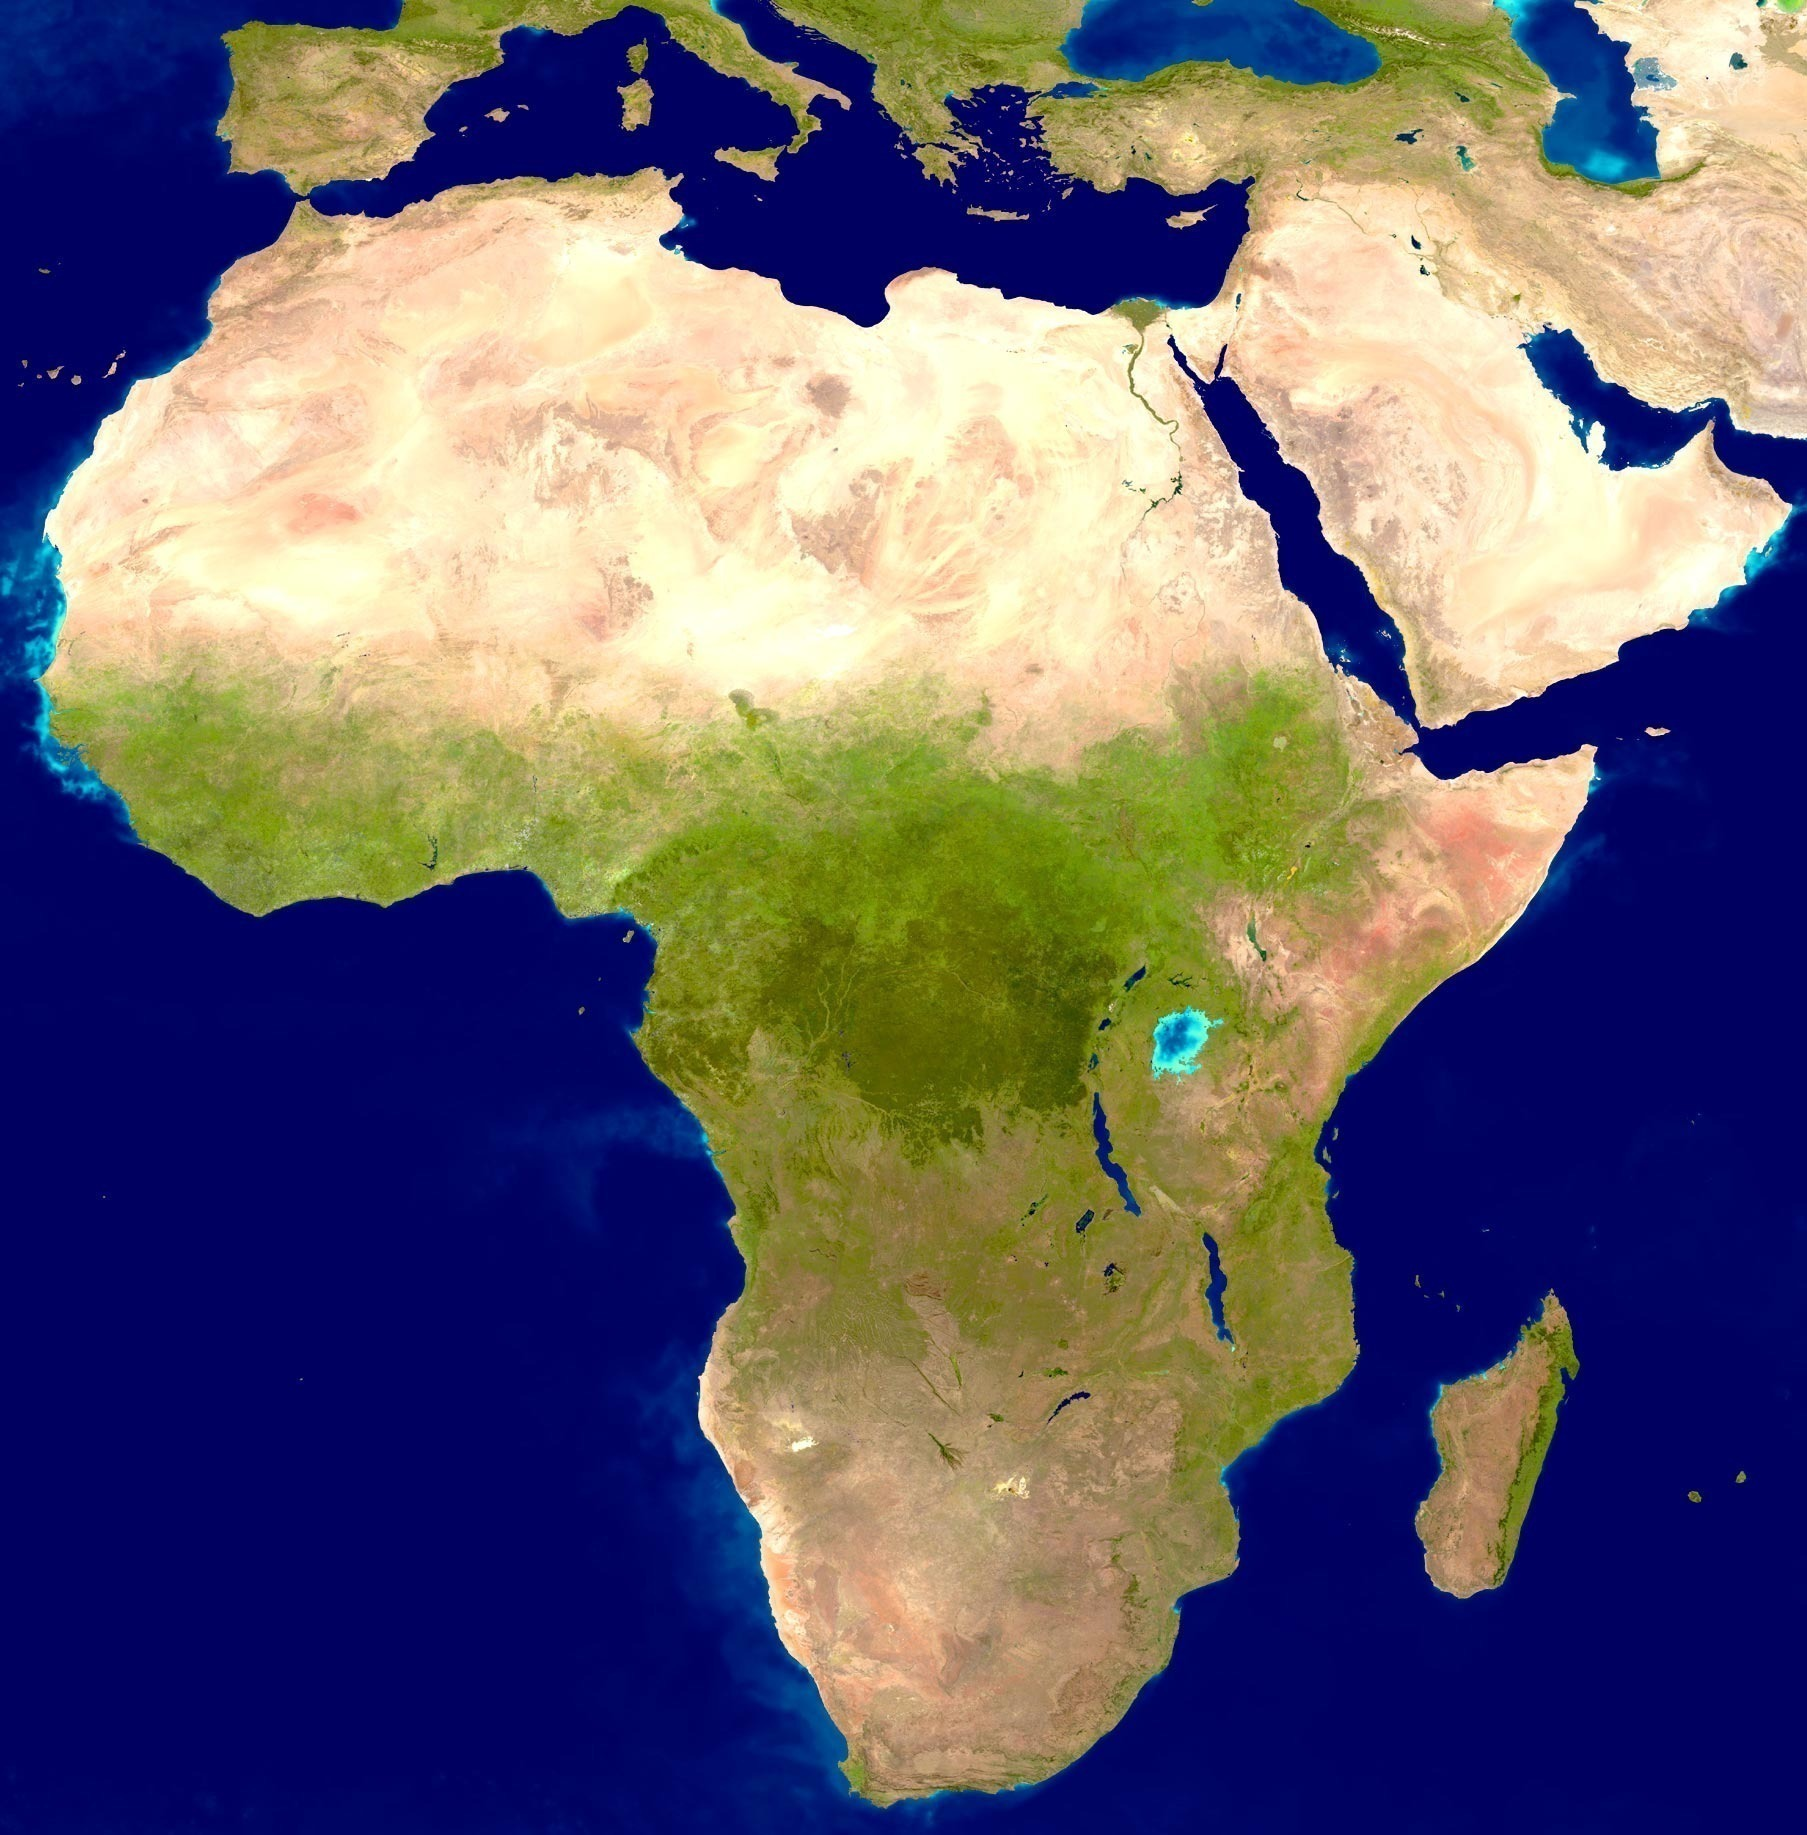 Who discovered Africa